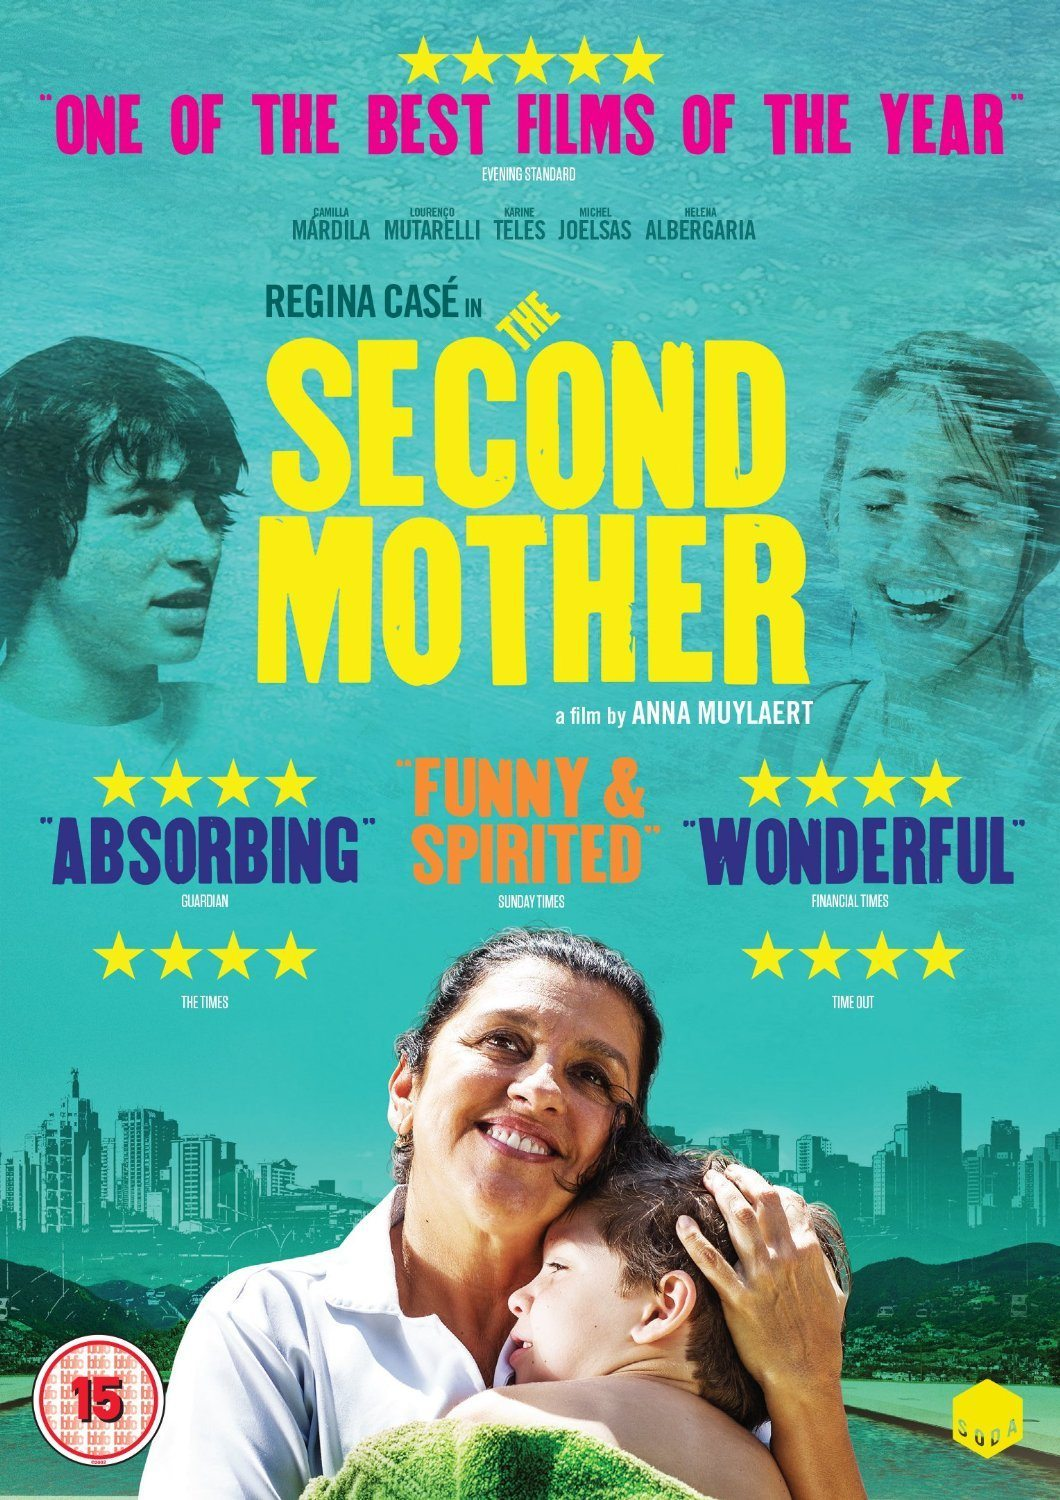 the second mother brazilian film